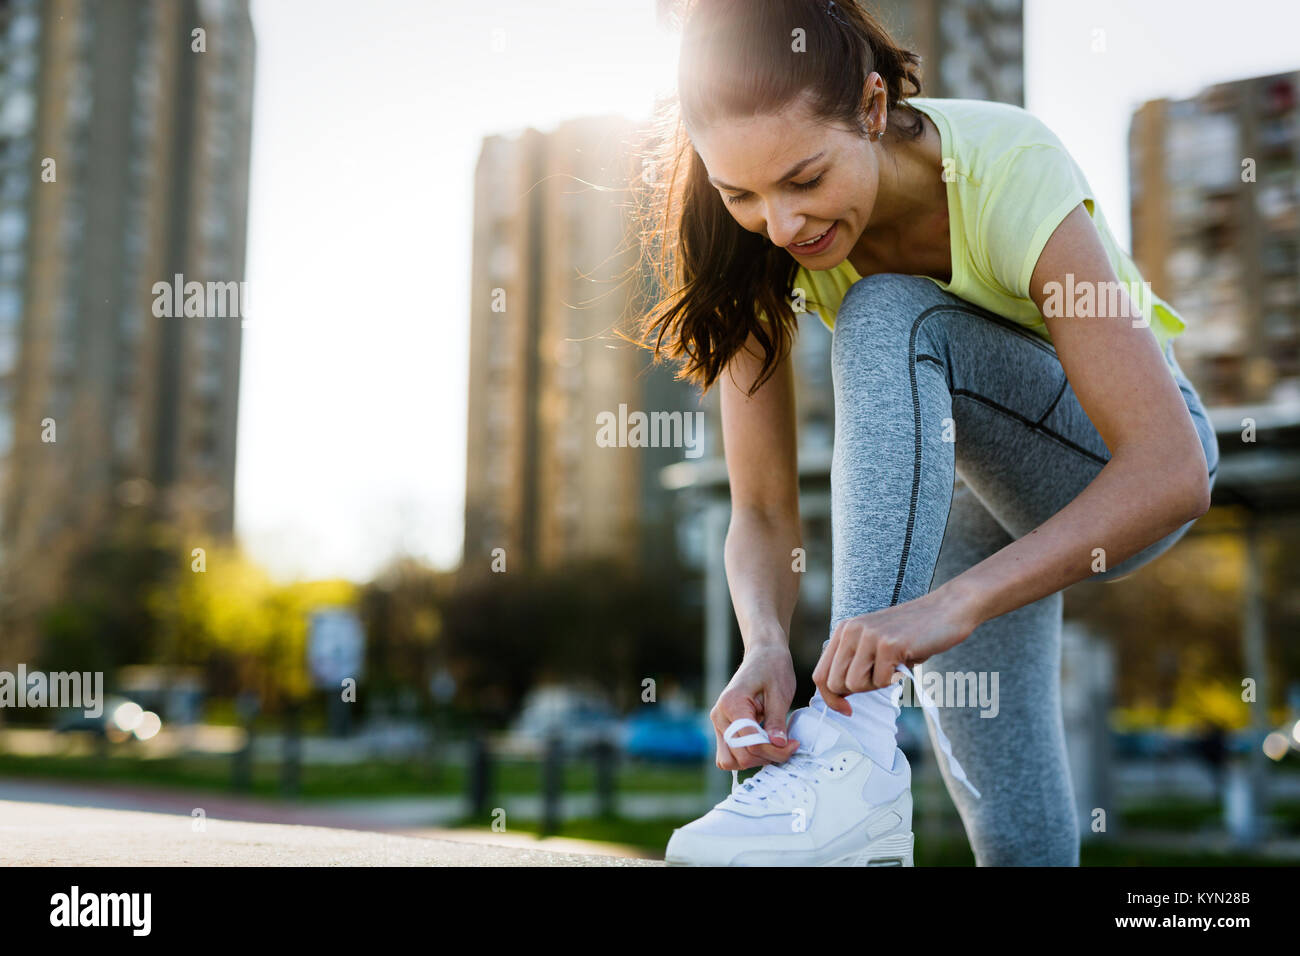 Attractive sportswoman tying shoelace and getting ready for fitness Stock Photo